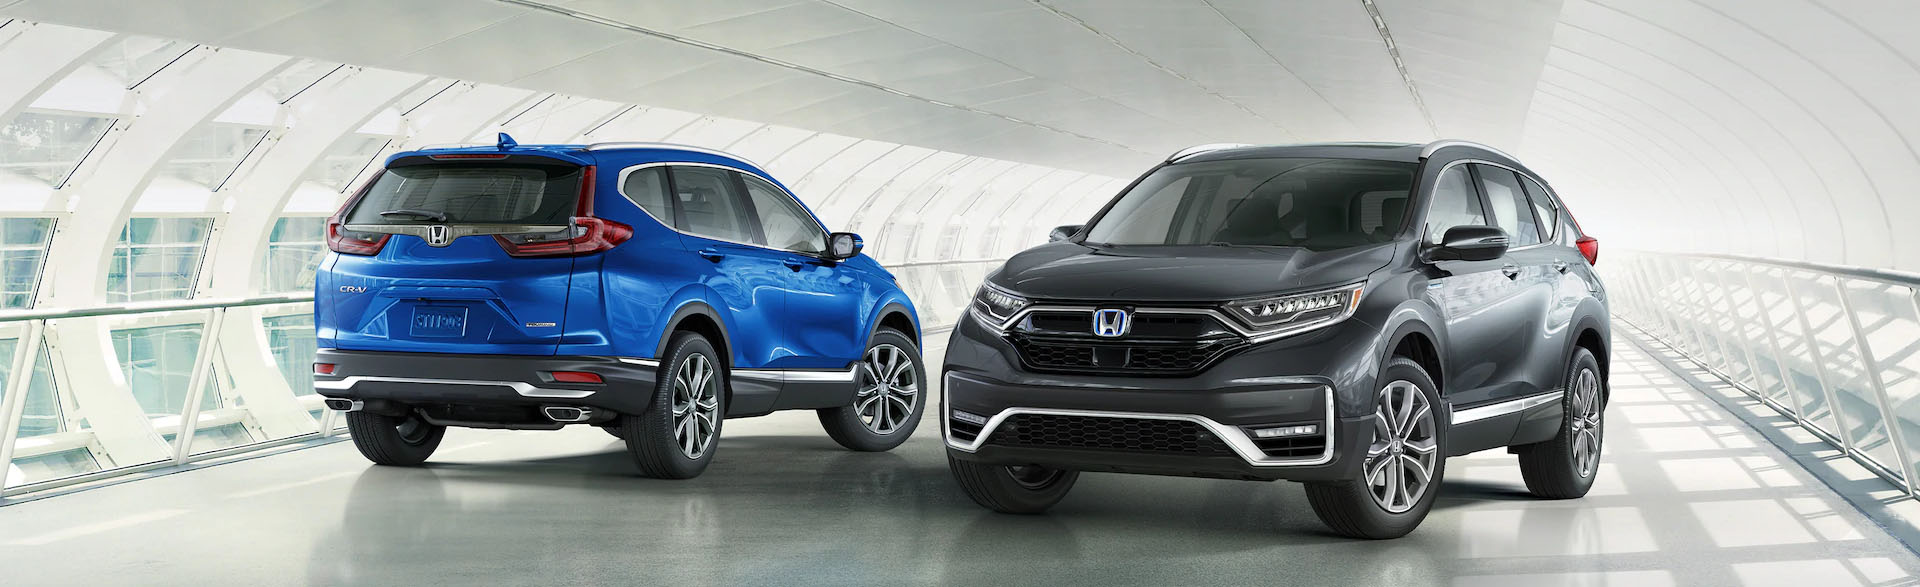 Our New & Used Honda Dealer Proudly Serves Columbia, Missouri, Drivers